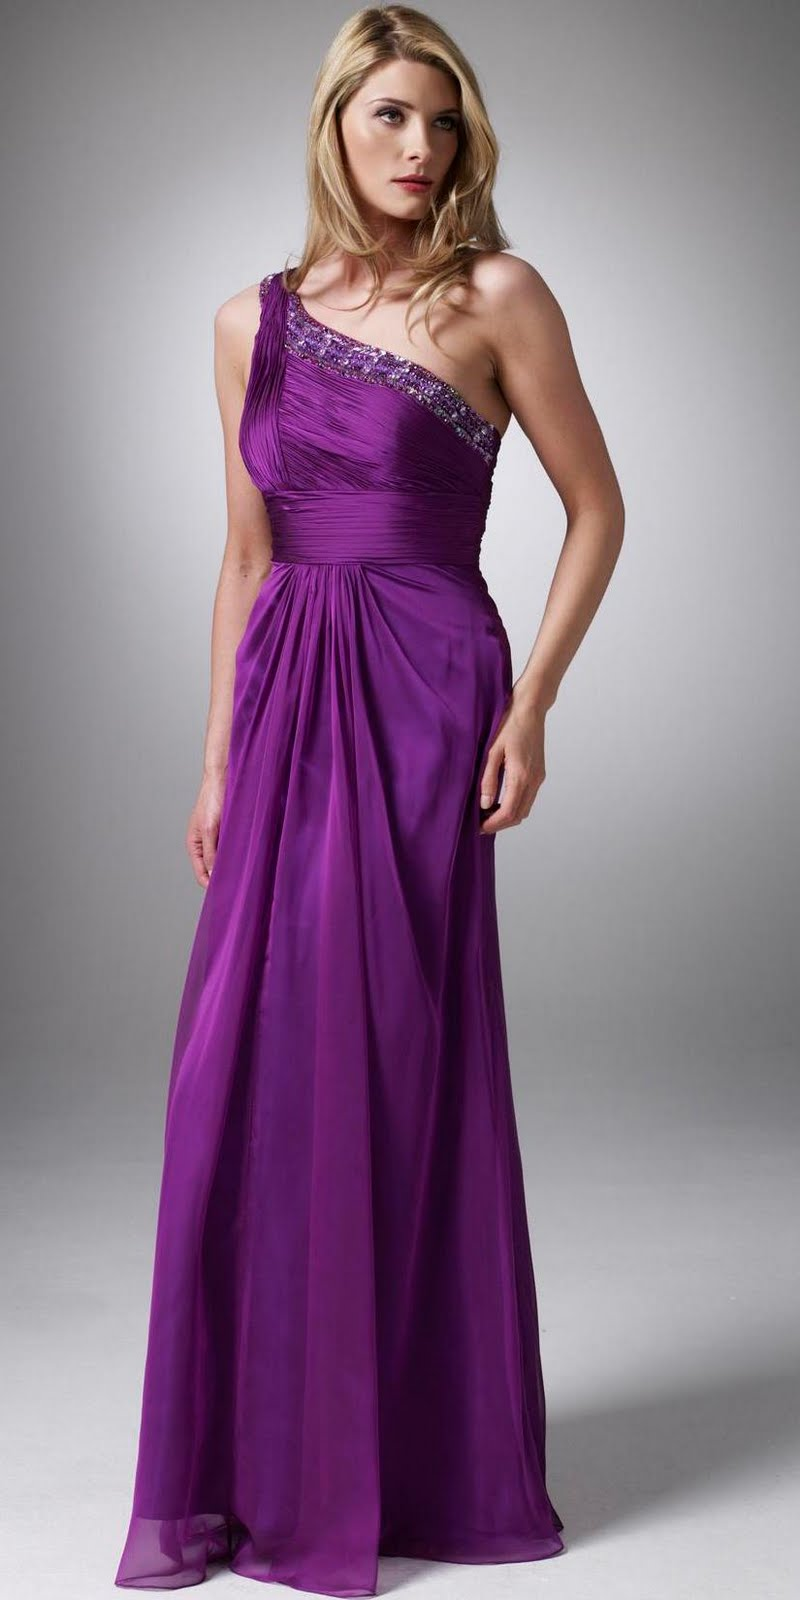 BEST WEDDING IDEAS: Evening Purple Prom Dresses Are Sexy And Wonderful